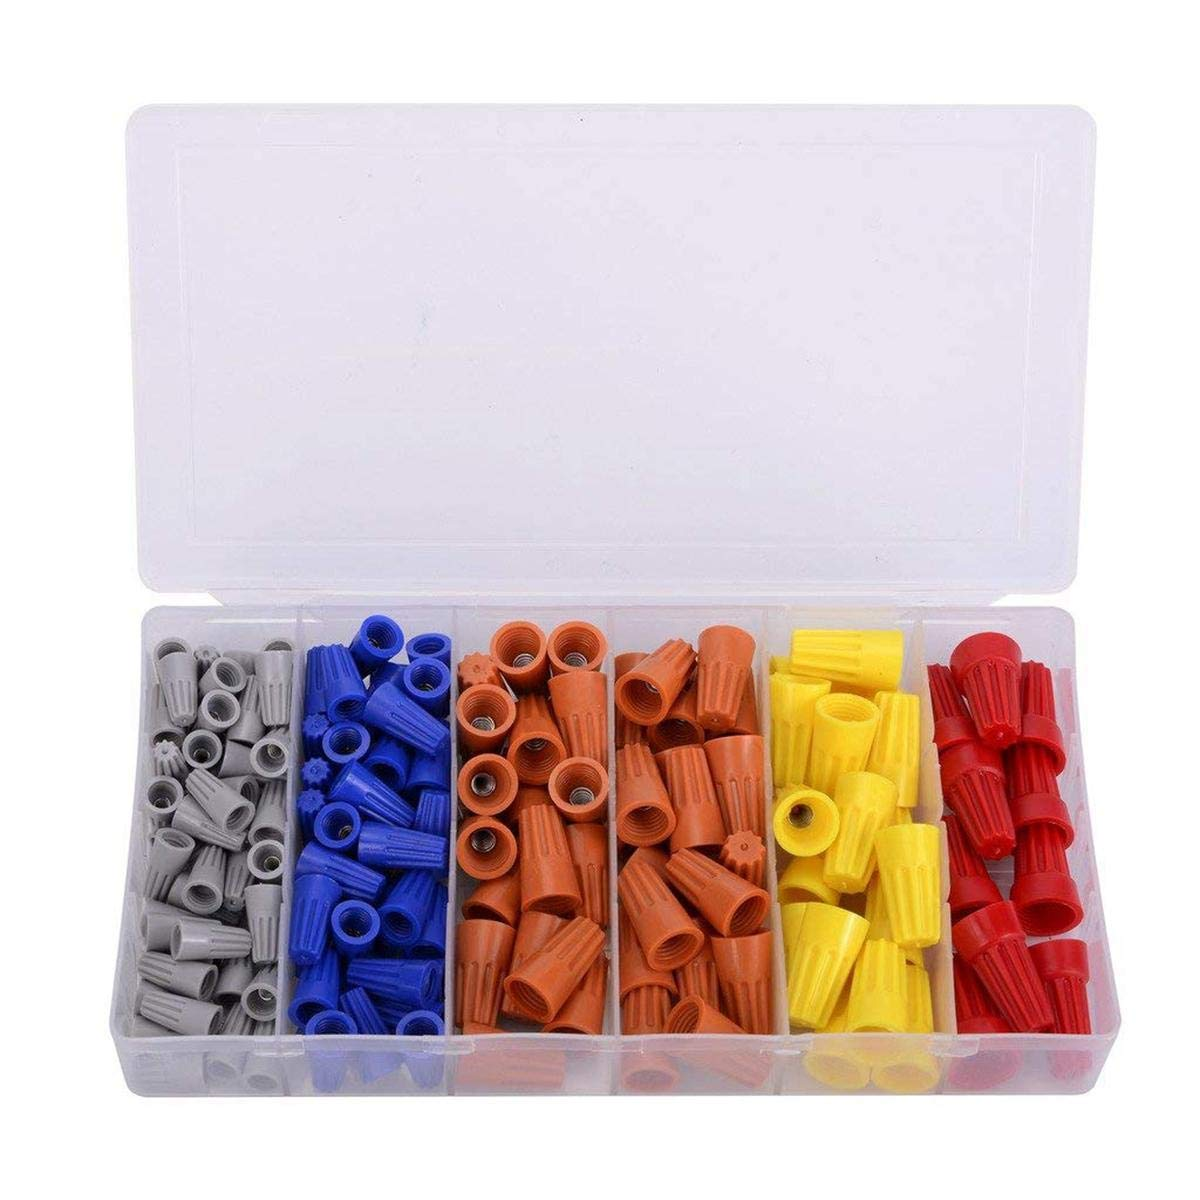 158Pcs Twist Nuts Caps Set Electrical Wire Connectors Quick Insulated Screw Terminal Kit